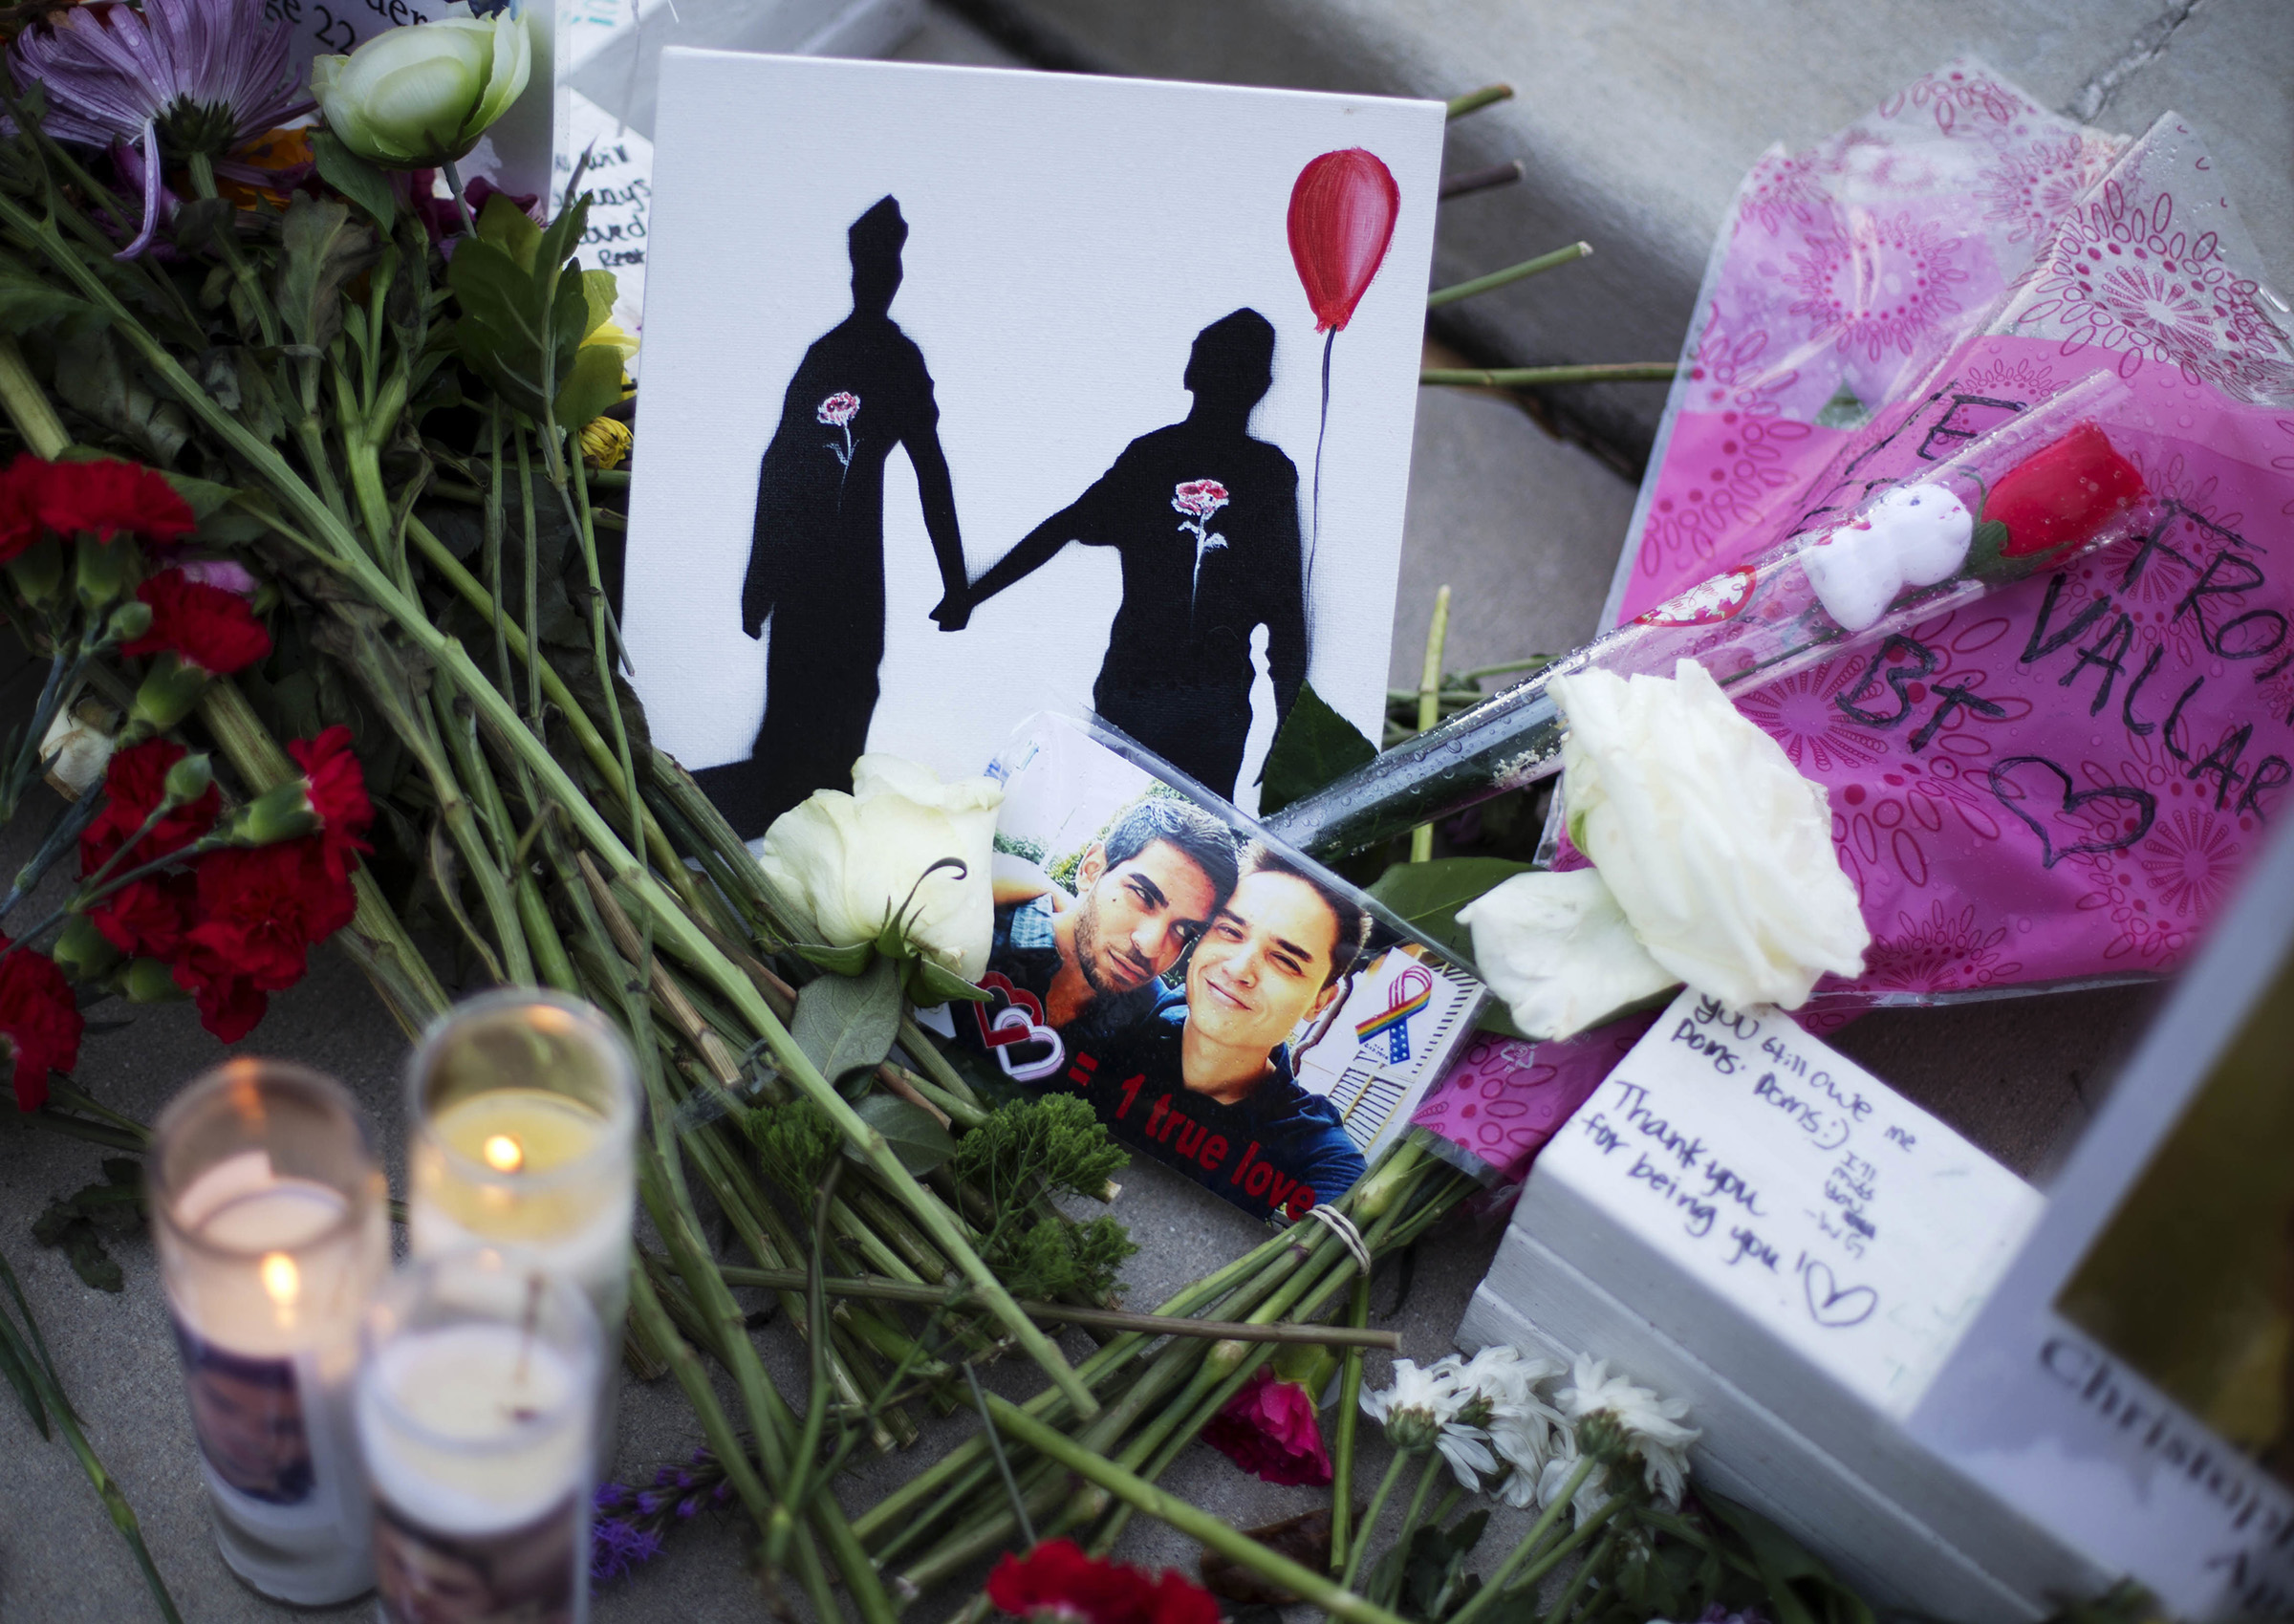 A makeshift memorial to Christopher Andrew Leinonen (R) and his boyfriend Juan Ramon Guerrero (L) on June 19, 2019. They were both killed in the Pulse nightclub mass shooting in Orlando.